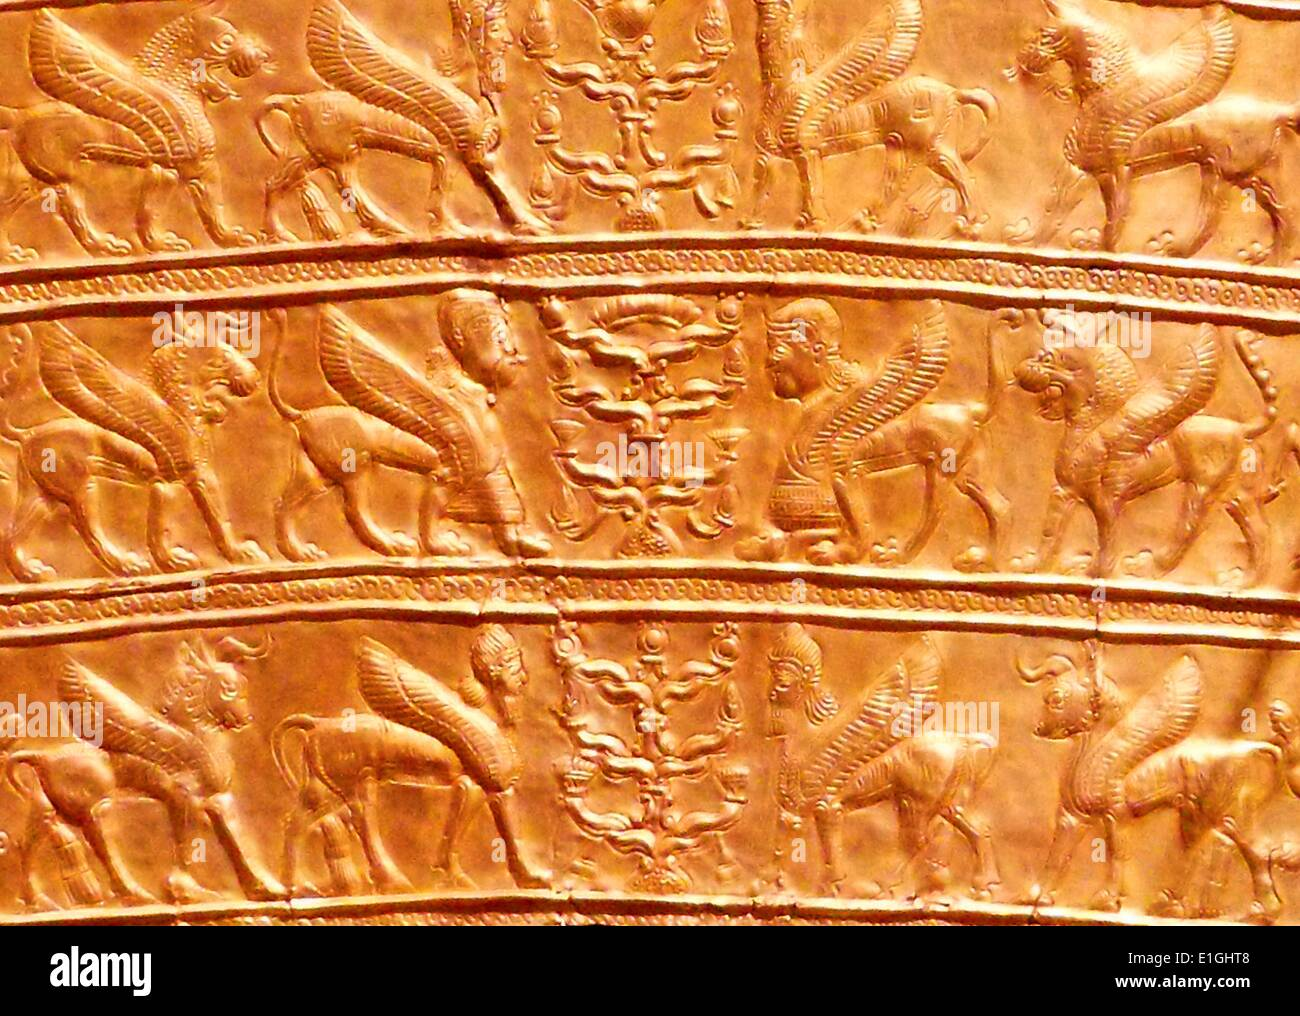 Plaques with winged creatures approaching stylized trees.  Gold, from Northwestern Iran, 8th-7th century B.C. - Stock Image